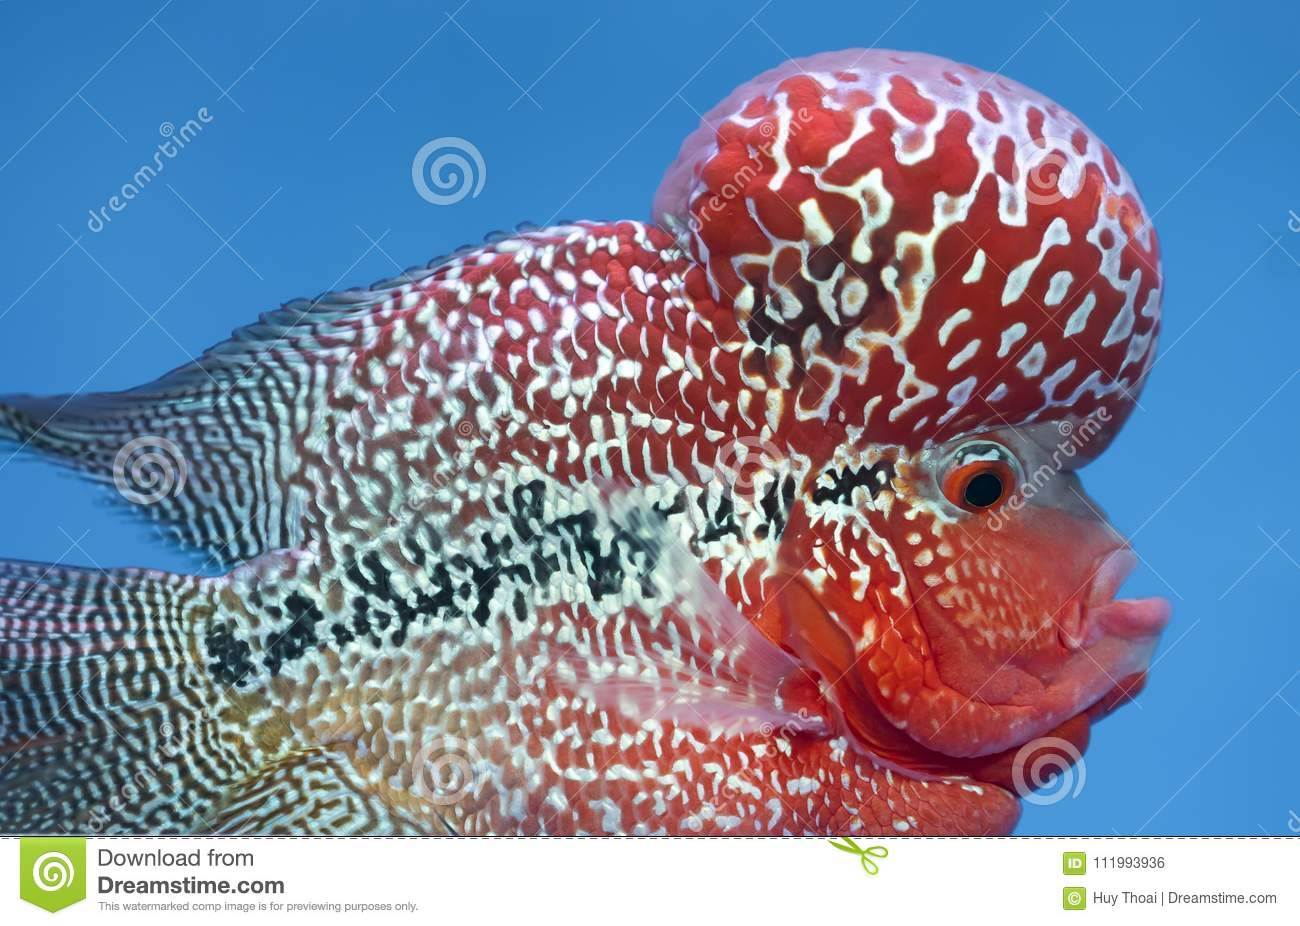 Flowerhorn Cichlid Colorful Fish Swimming In Fish Tank. Stock Photo ...